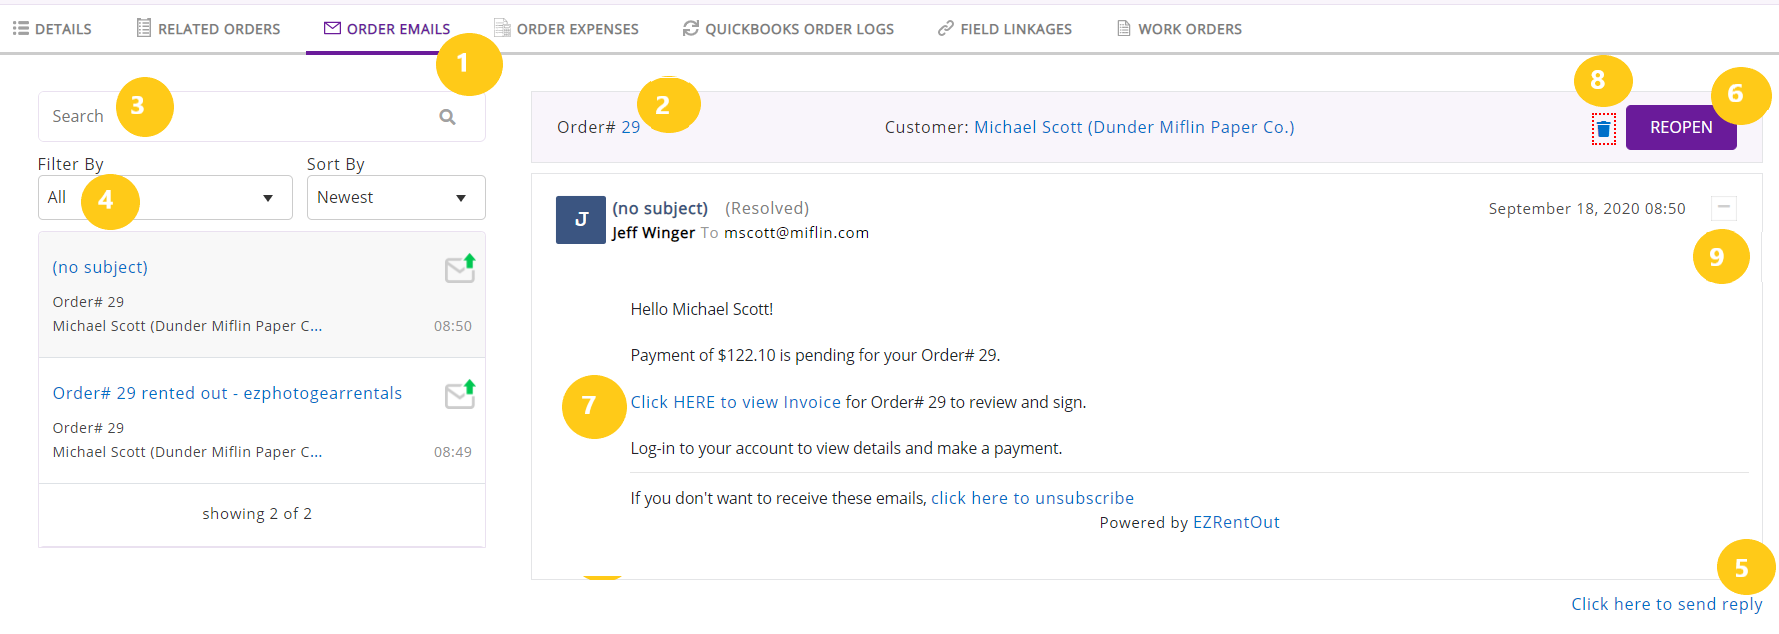 Order emails tab - 1